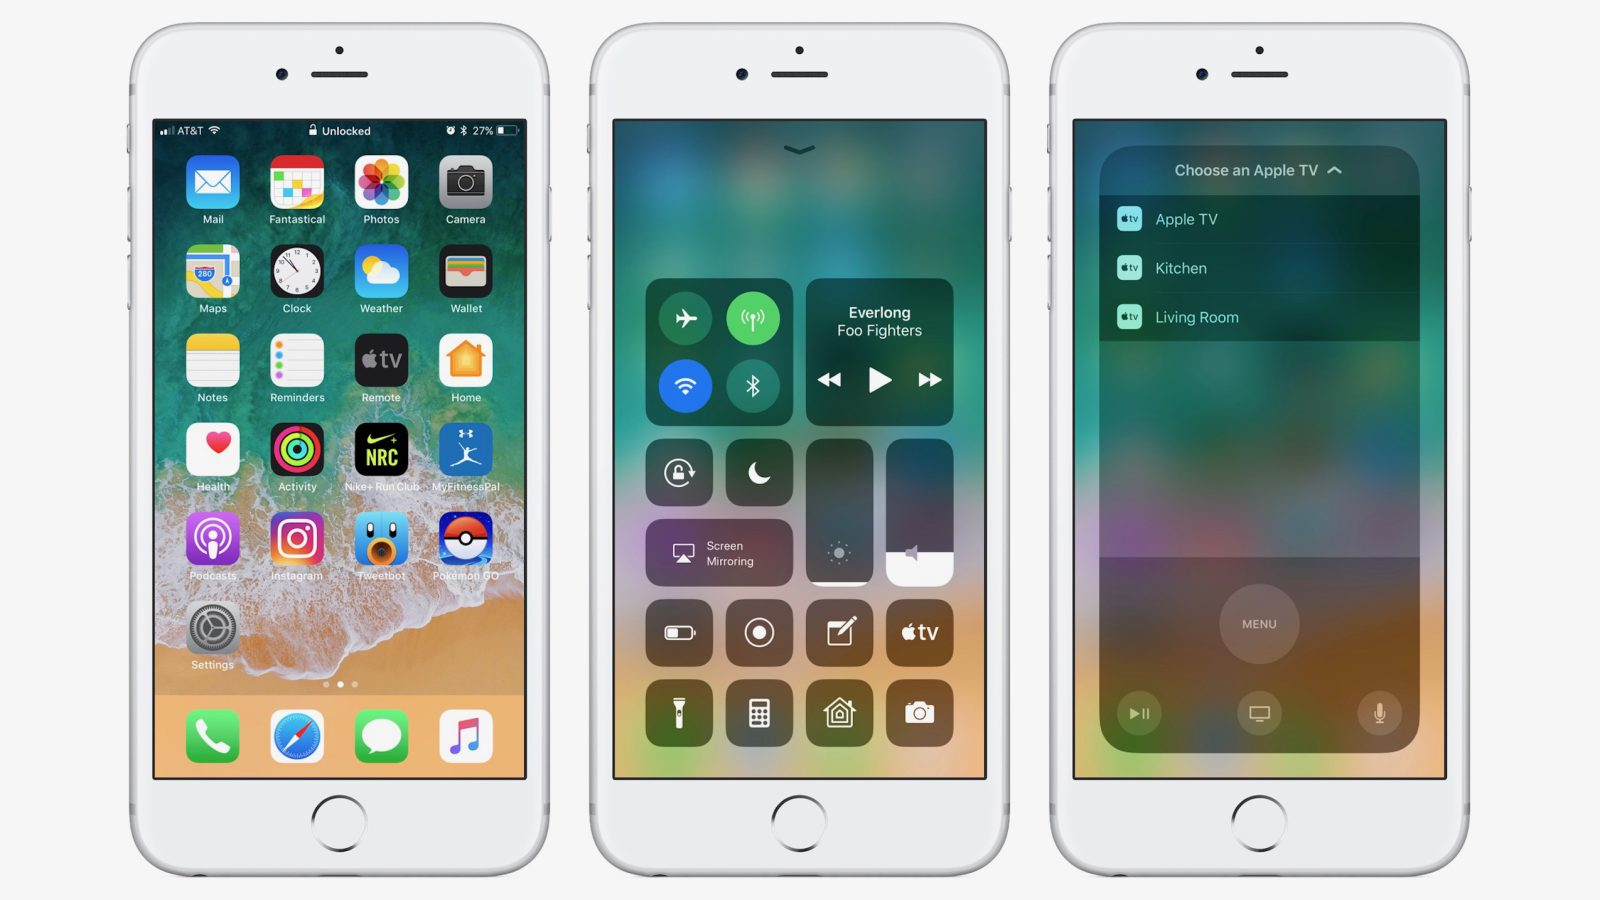 IOS 11's Control Center Doesn't Fully Disable Bluetooth and WiFi